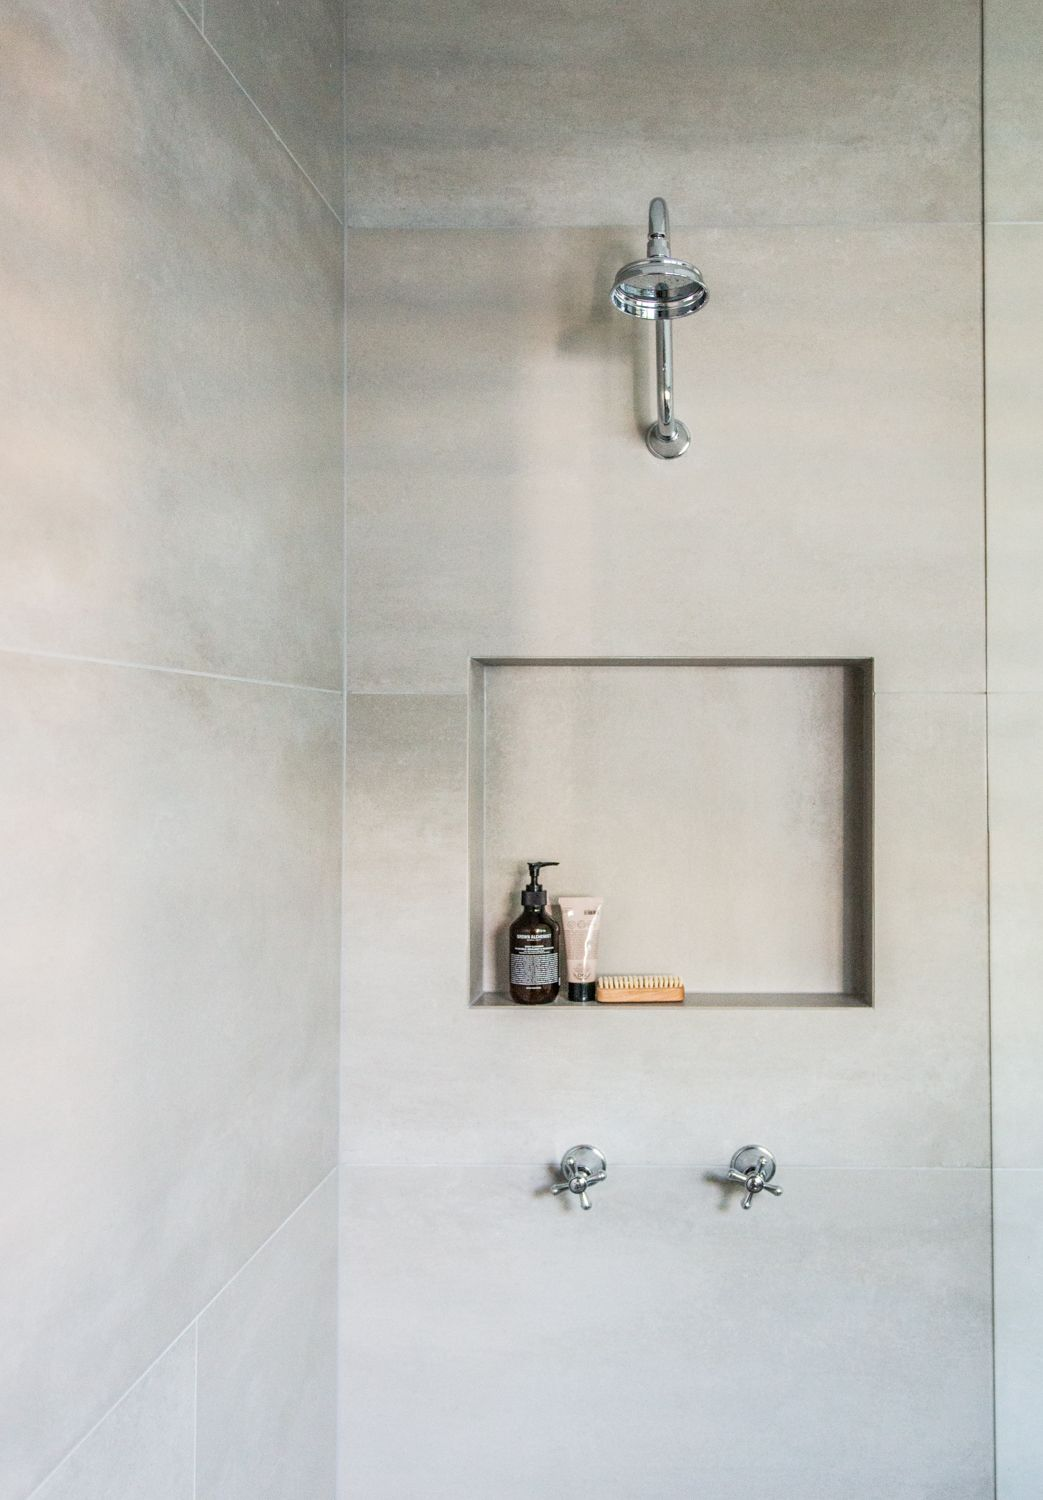 Large Format Tiles In A Shower Area Means Less Grout To Clean 600mm X 1200mm Tile Esagona Ash Large Shower Tile Diy Bathroom Remodel Large Tile Bathroom